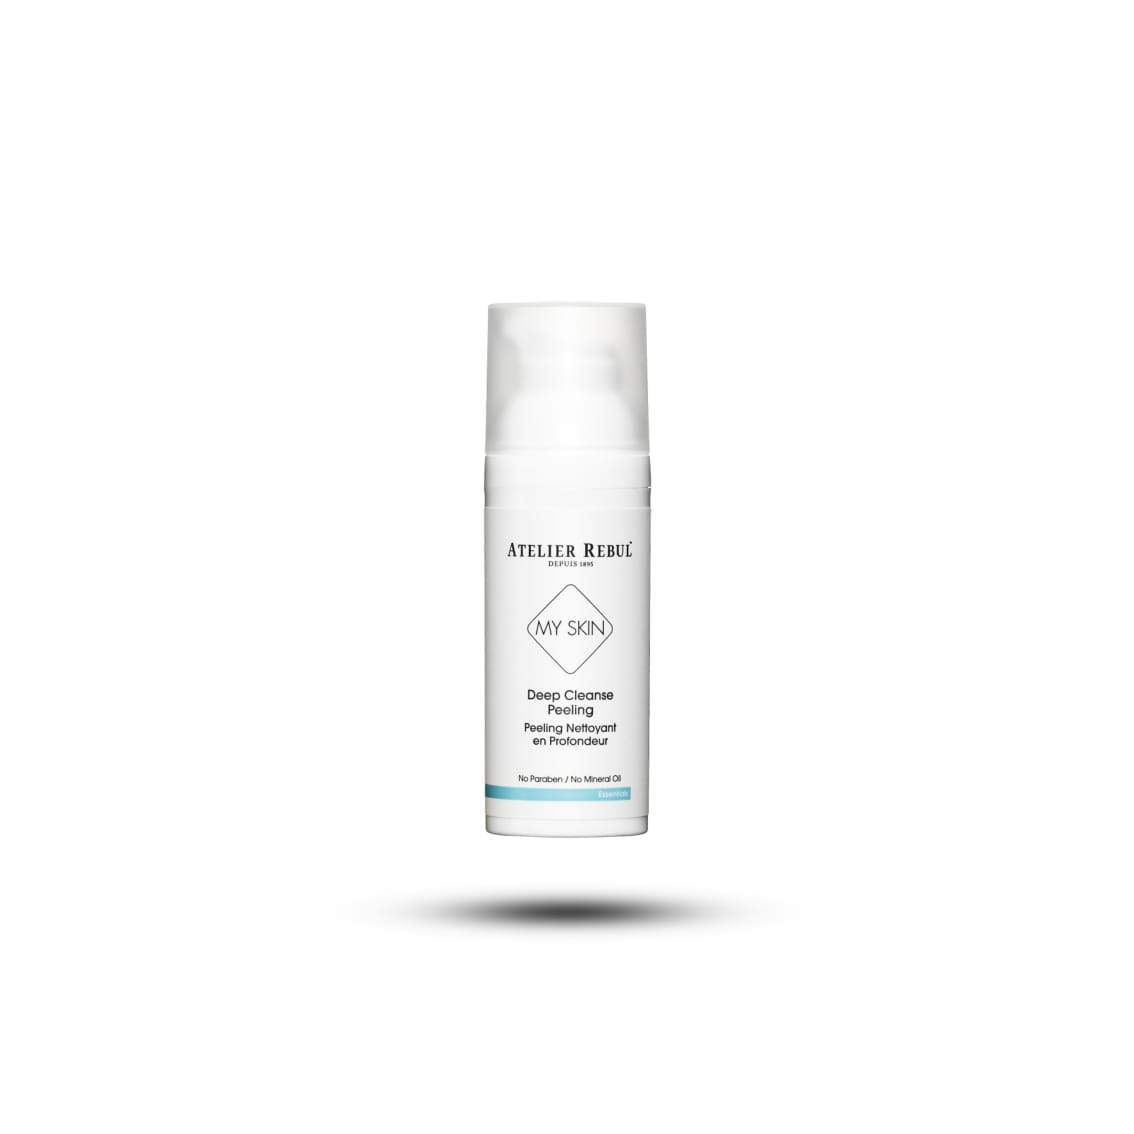 Deep Cleanse Peeling Cream 50ml